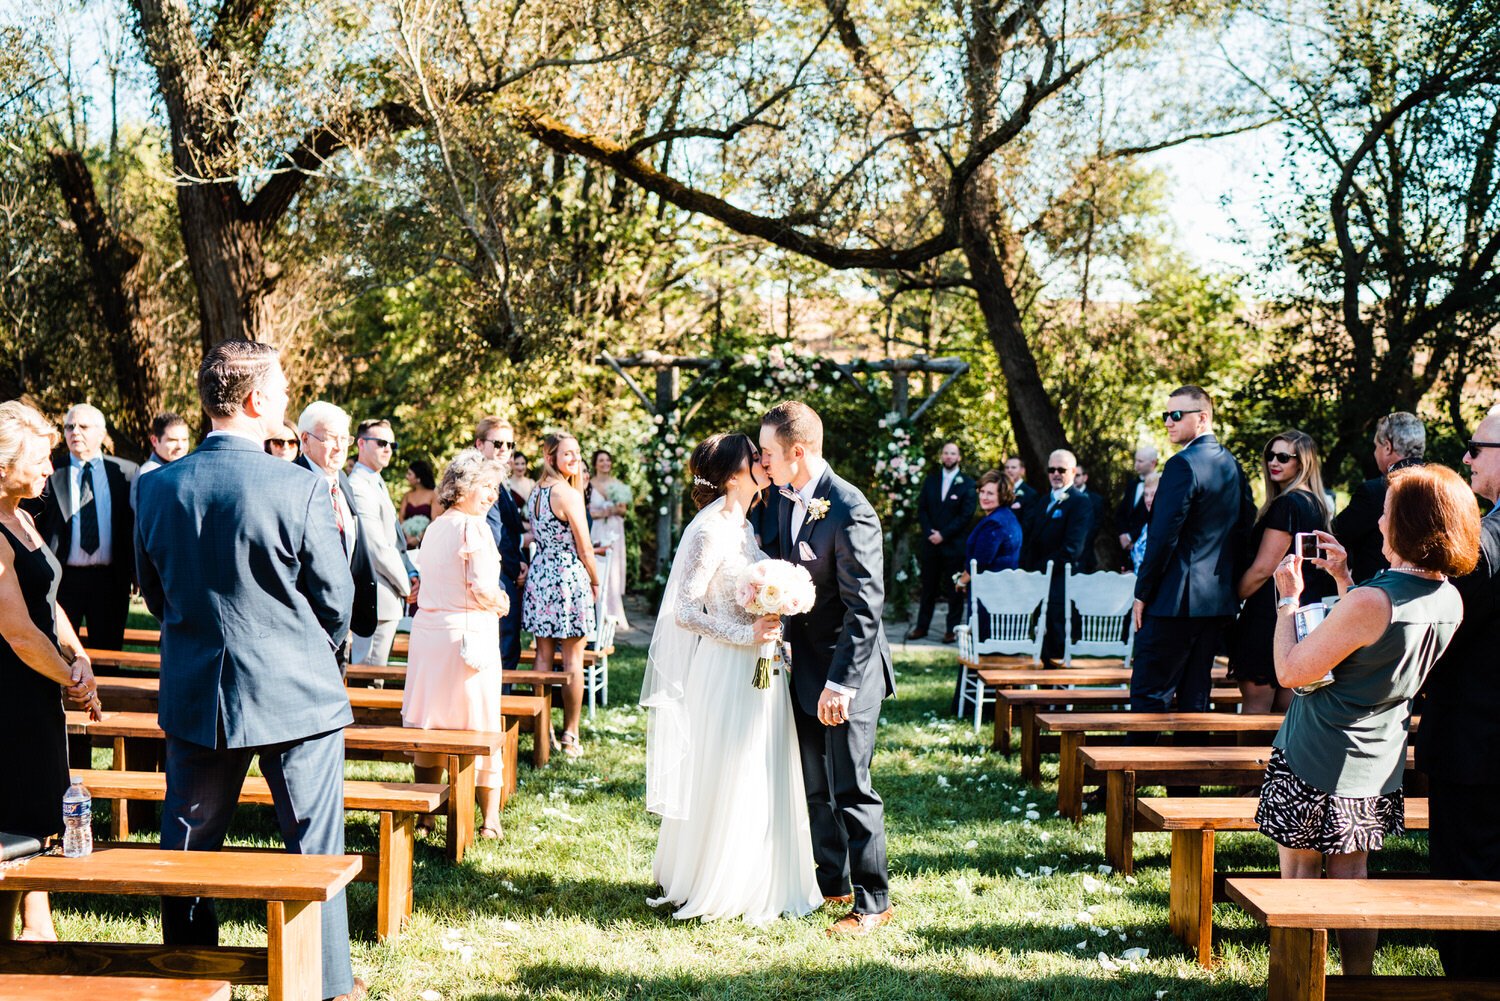 Top 7 Wedding Venues In Lehigh Valley Marshall Scott Photography